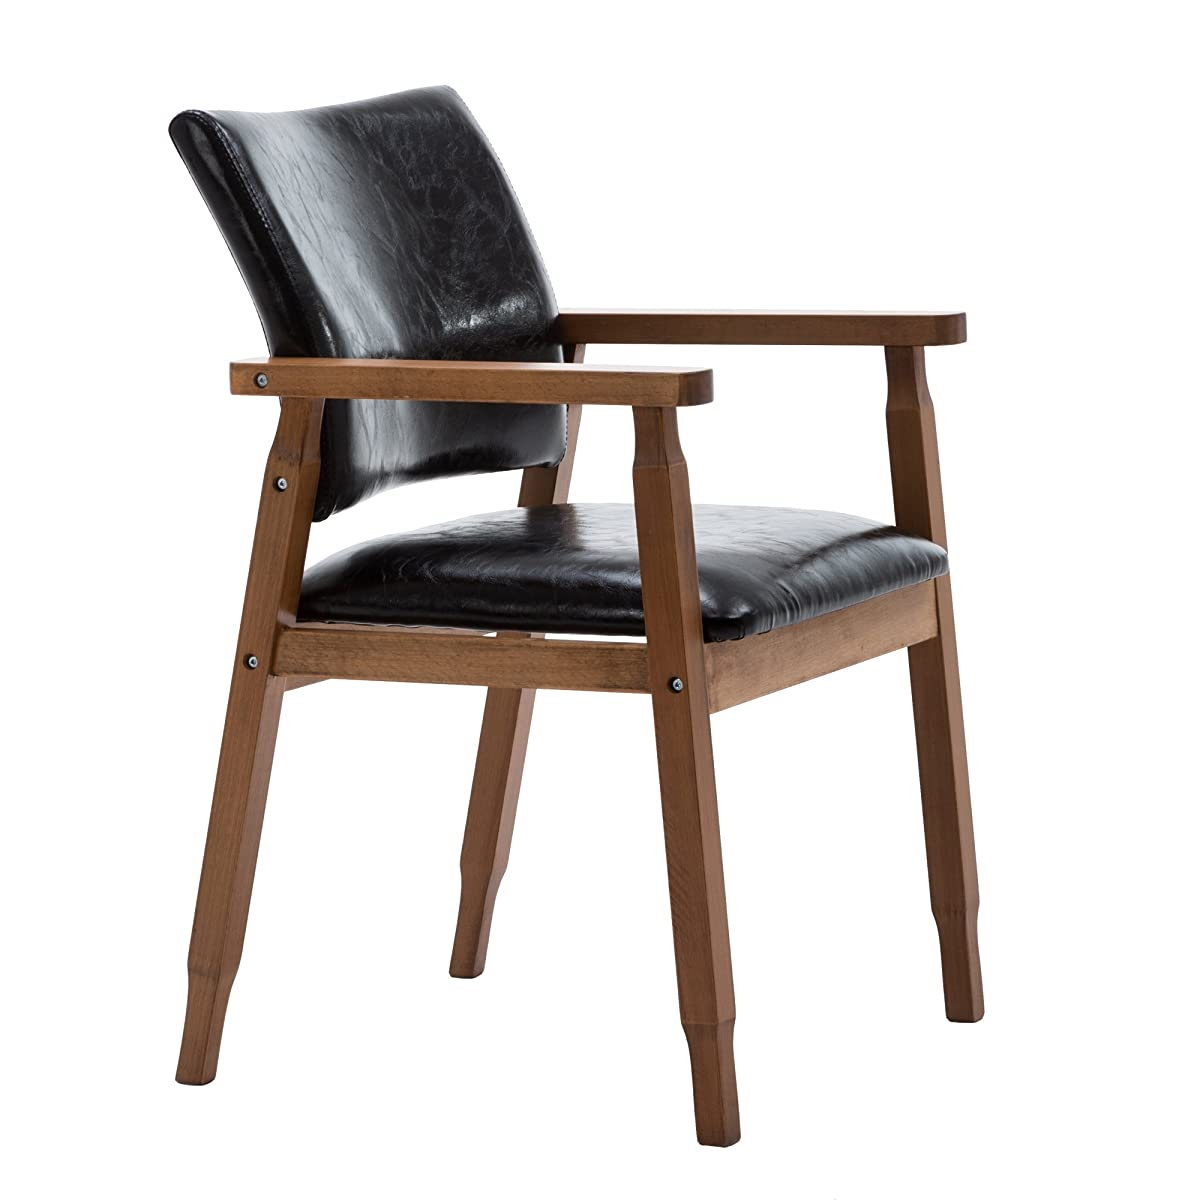 NOBPEINT Mid-Century Dining Side Chair with Faux Leather Seat in Black, Arm Chair in Walnut,Set of 2